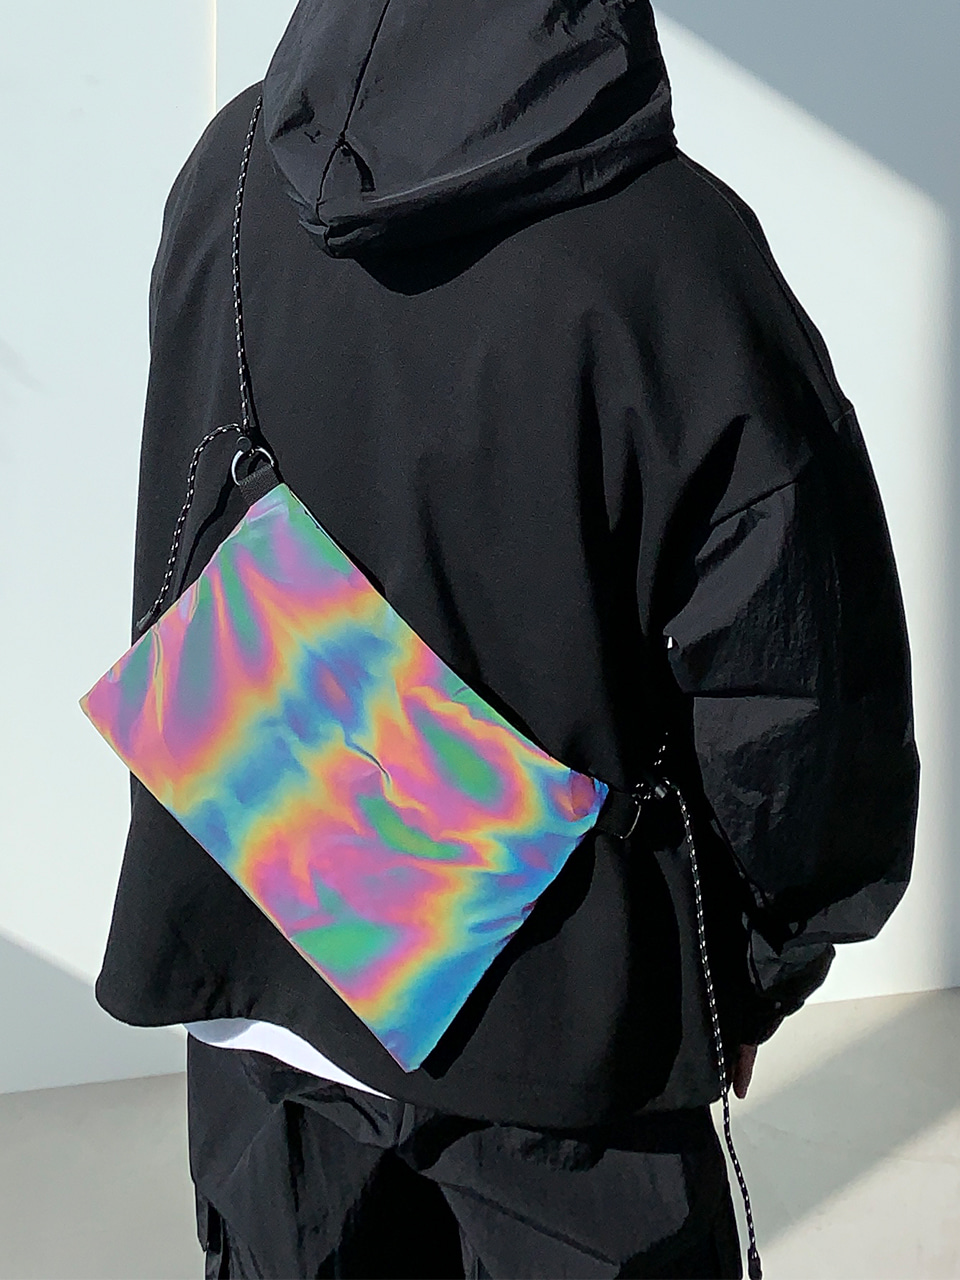 Joel Reflective Sacoche Bag